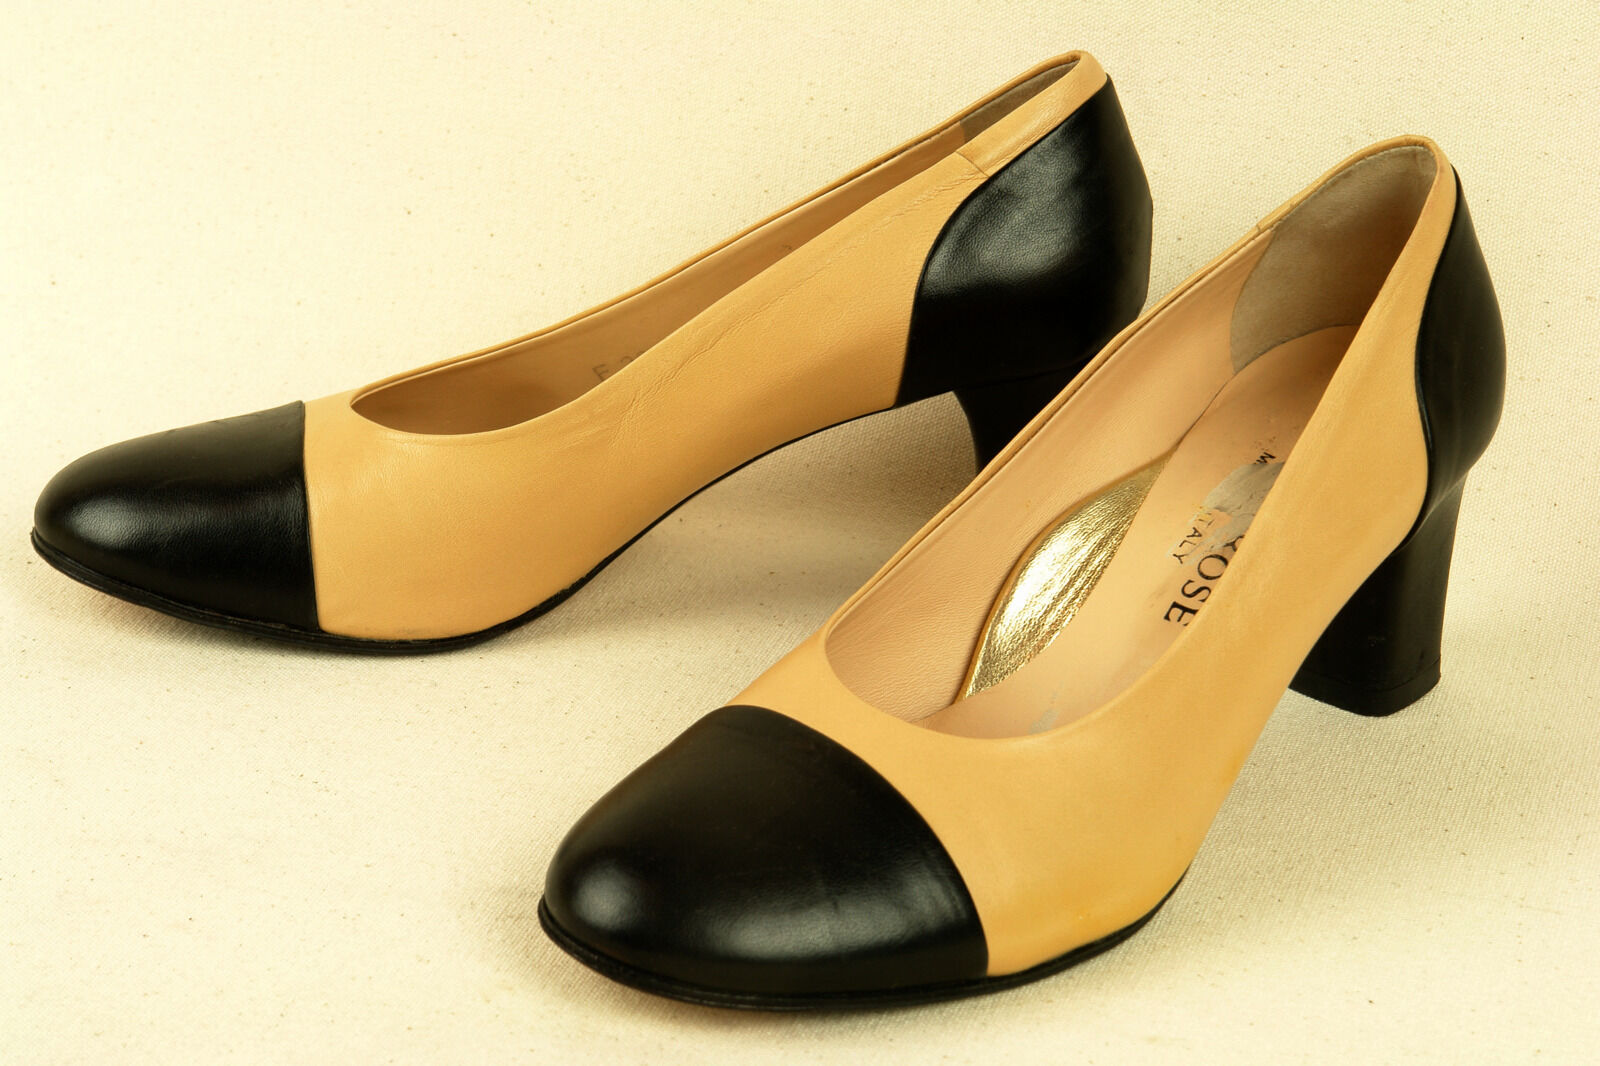 TARYN ROSE / ITALY / CLASSIC SPECTATOR PUMP / IN NUDE & BLACK / PUMP 36.5 / EXCELLENT 4a5415